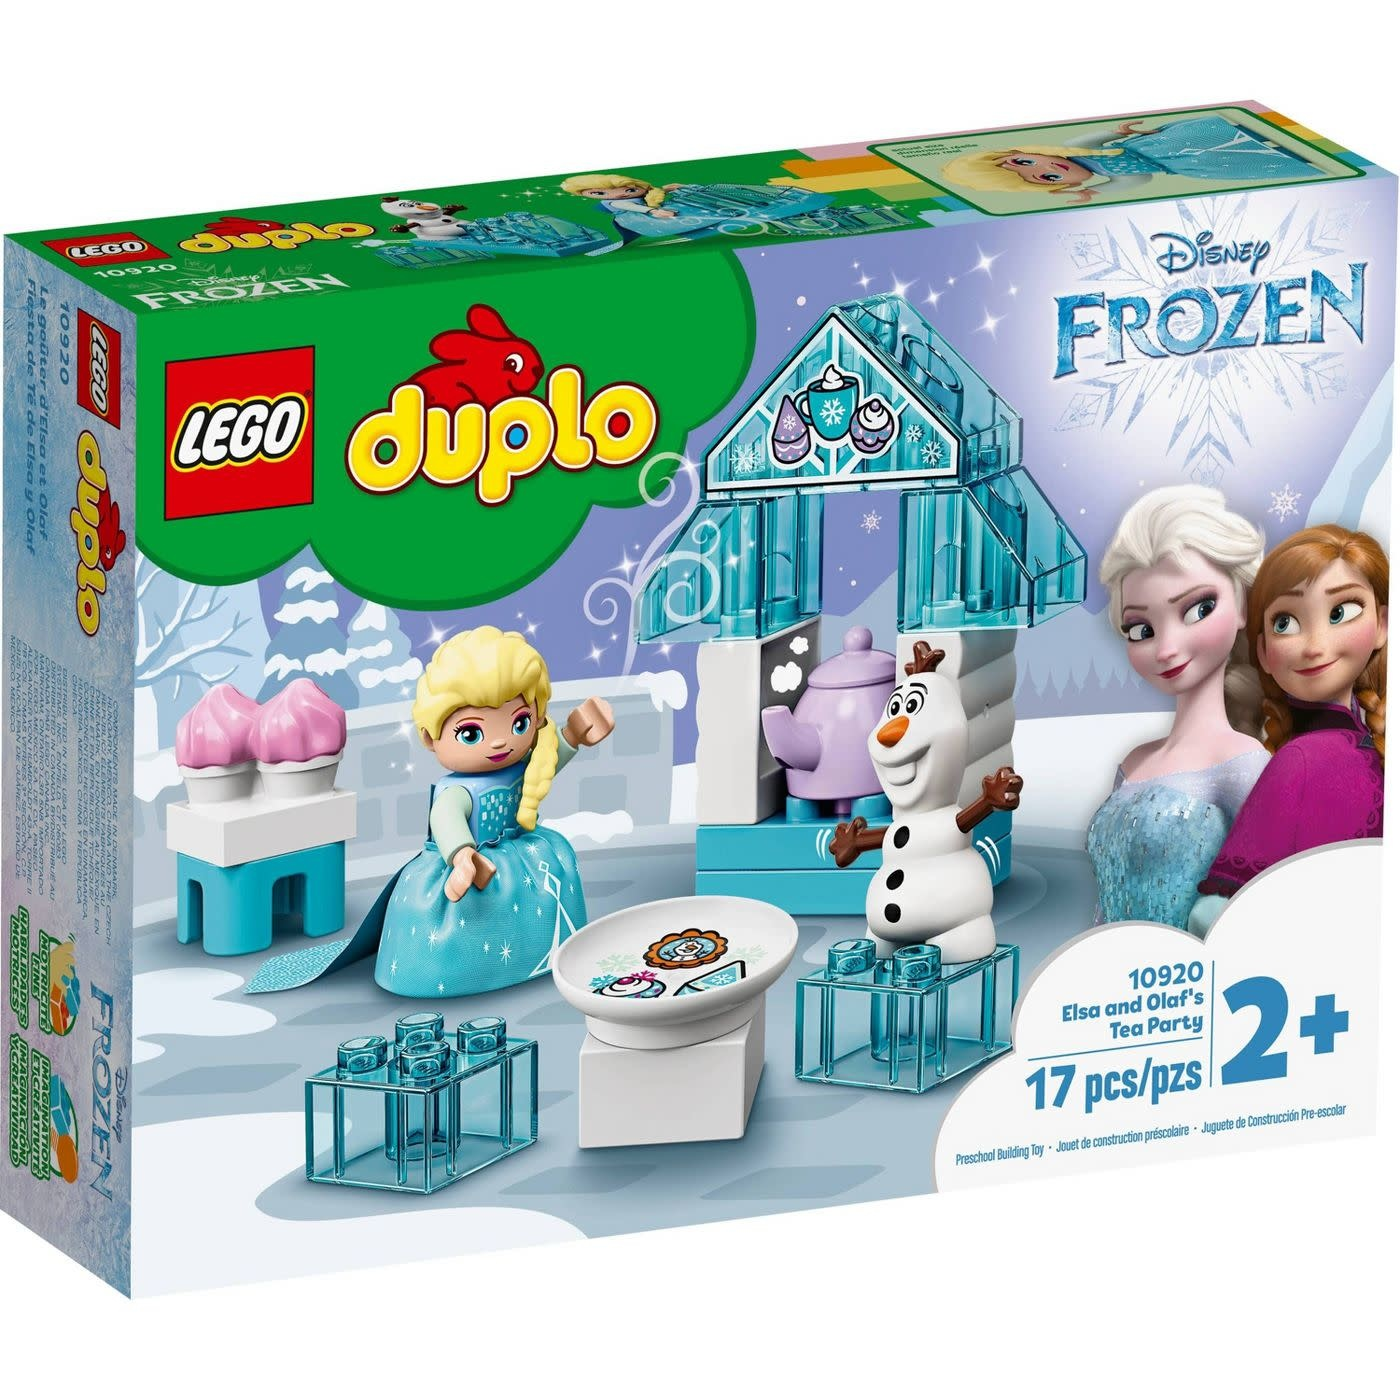 10920 Elsa & Olaf's Tea Party by LEGO Duplo